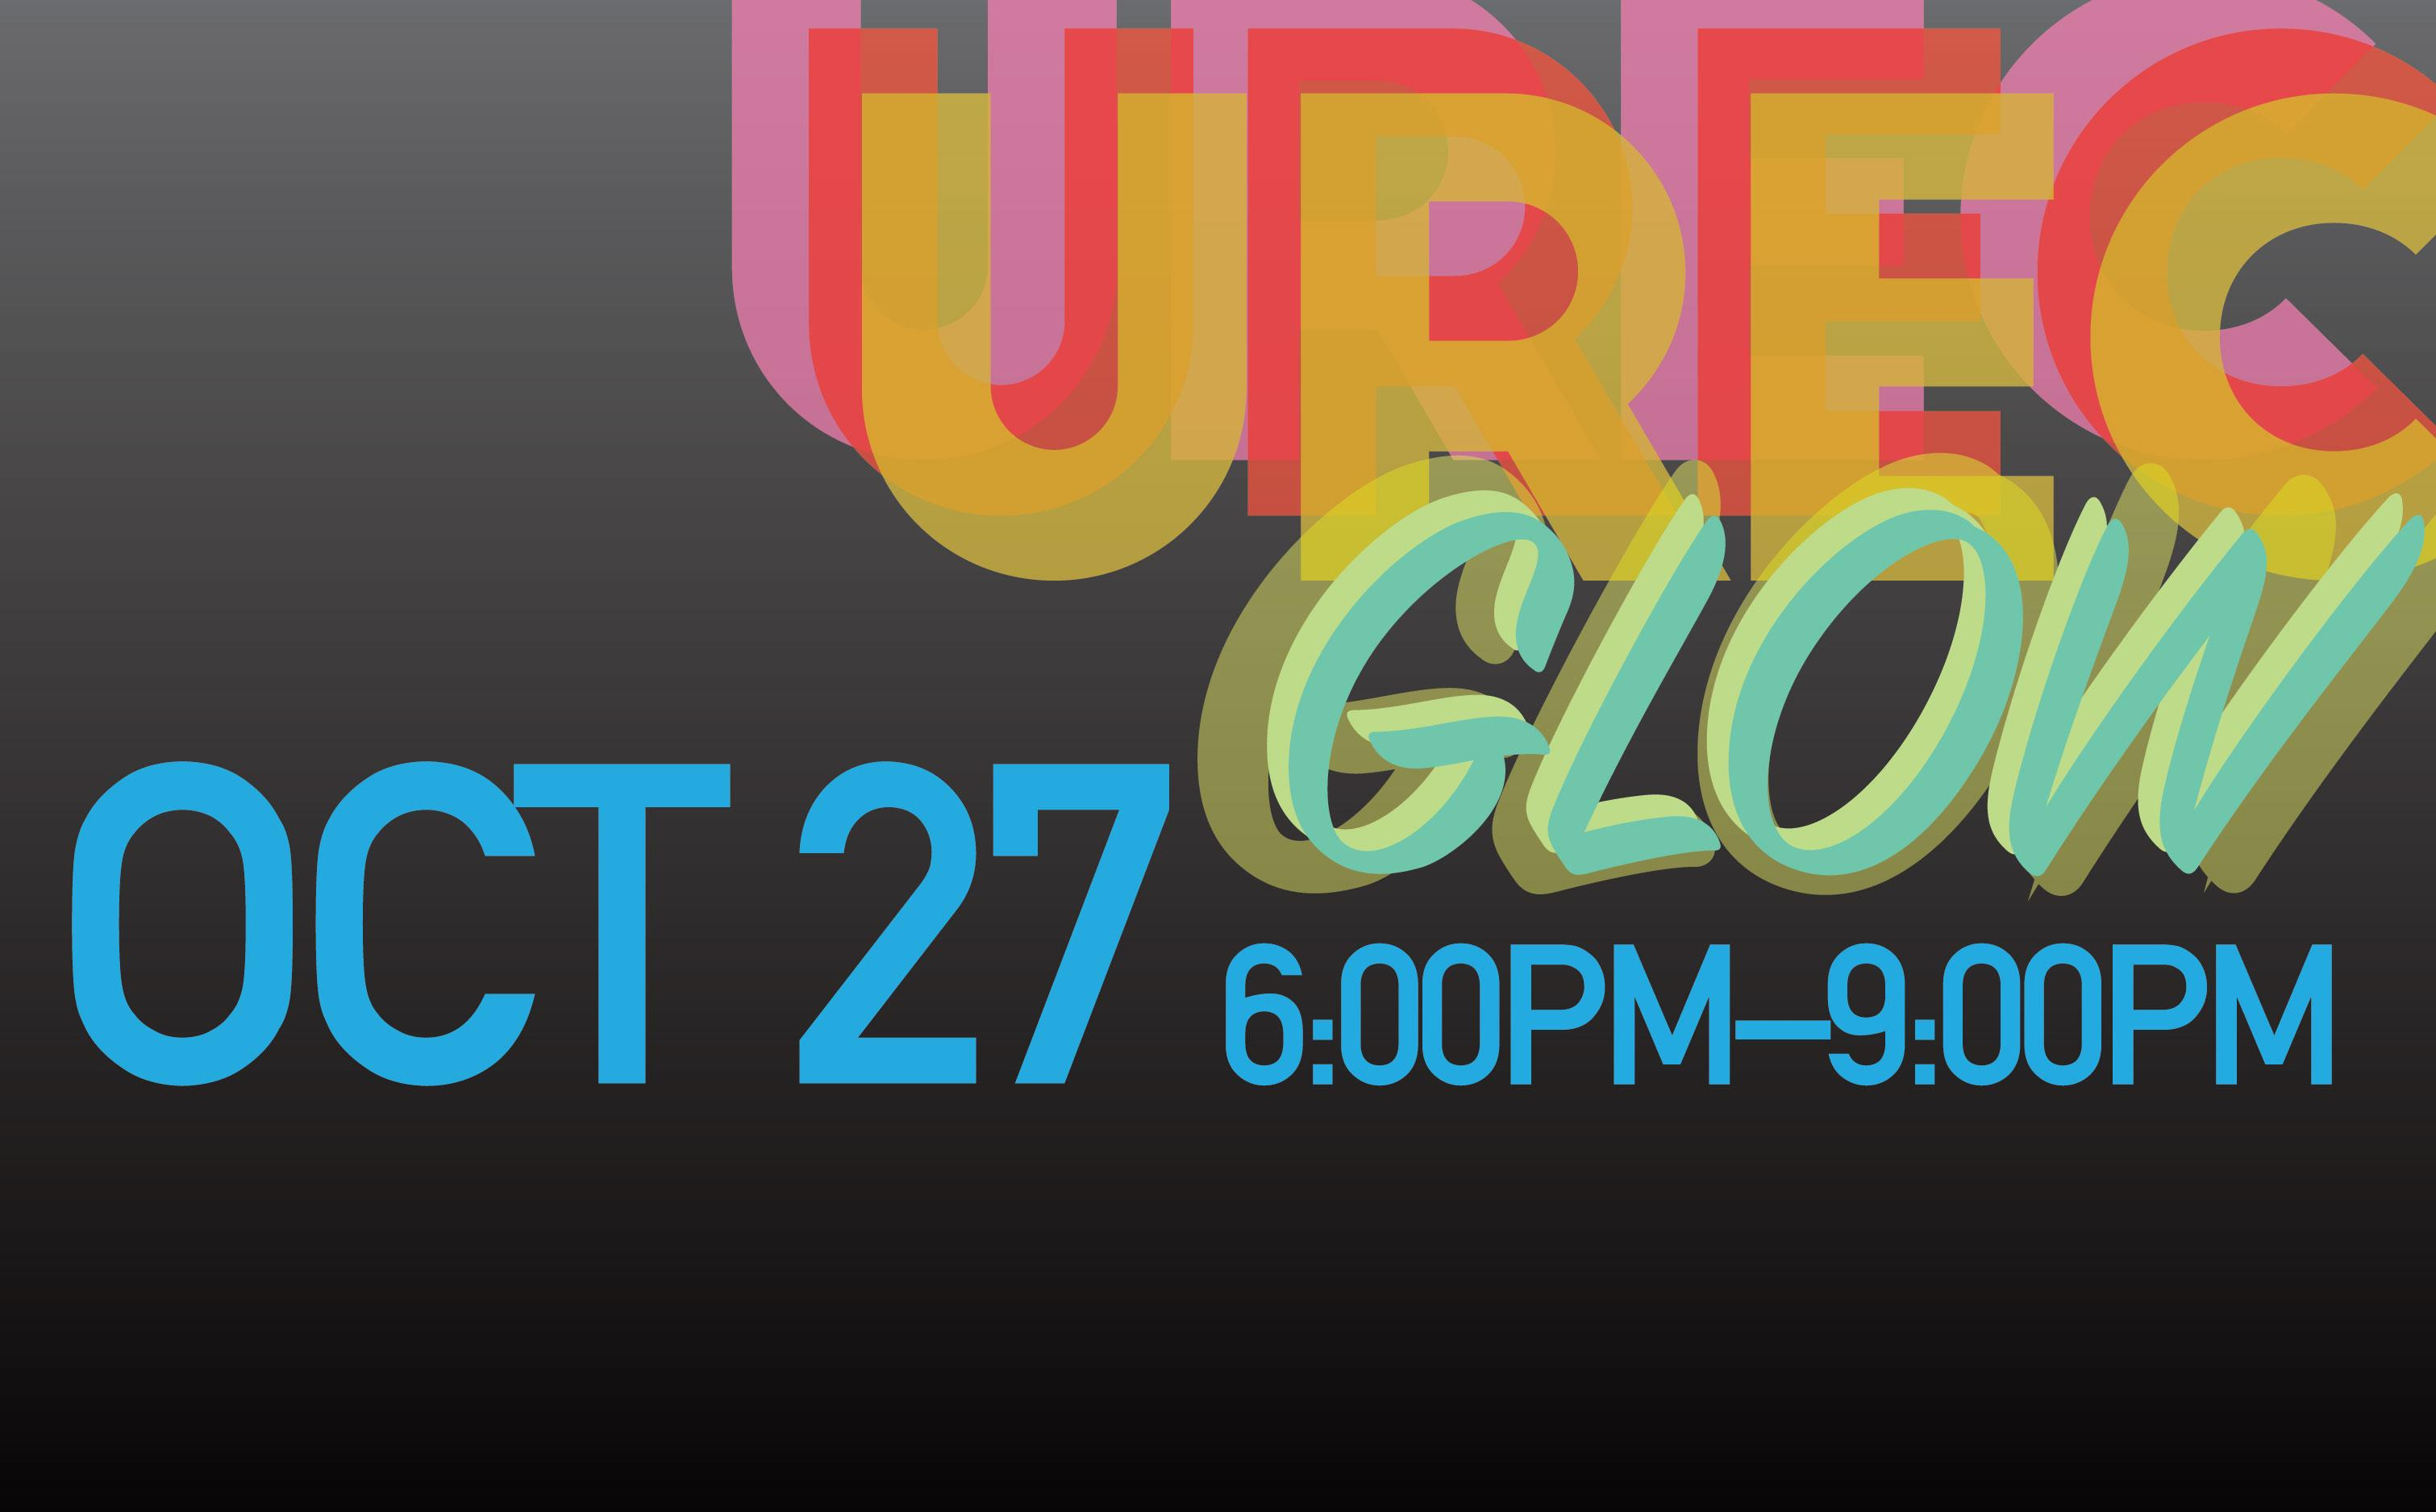 Try blacklight bouldering, wicked glow workouts, navigate the maze, and paint your face for the glow photo booth at UREC Glow.